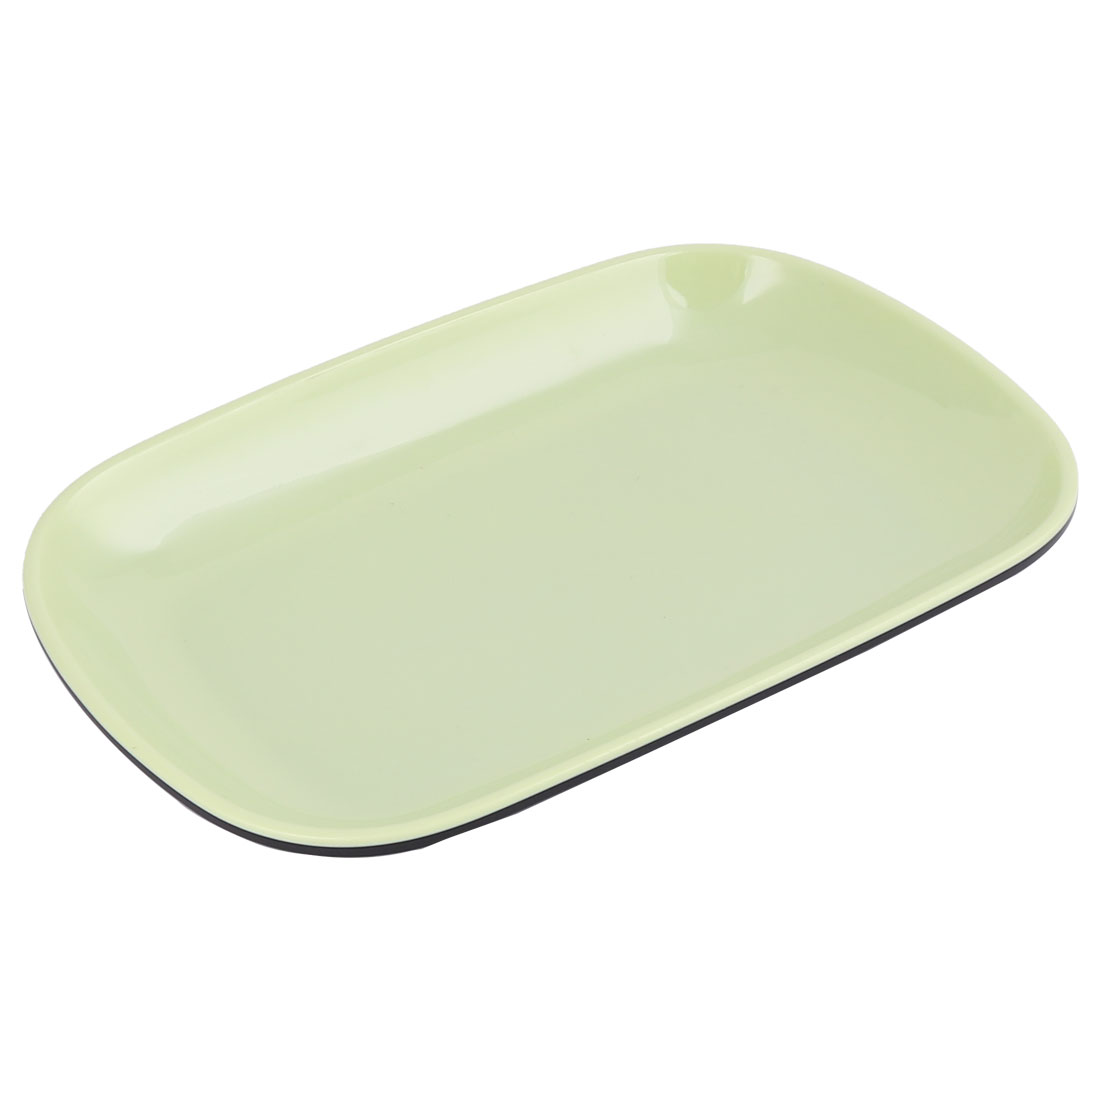 Kitchen Plastic Oval Shaped Food Fruit Vegetable Storage Plate Tray Dish Green